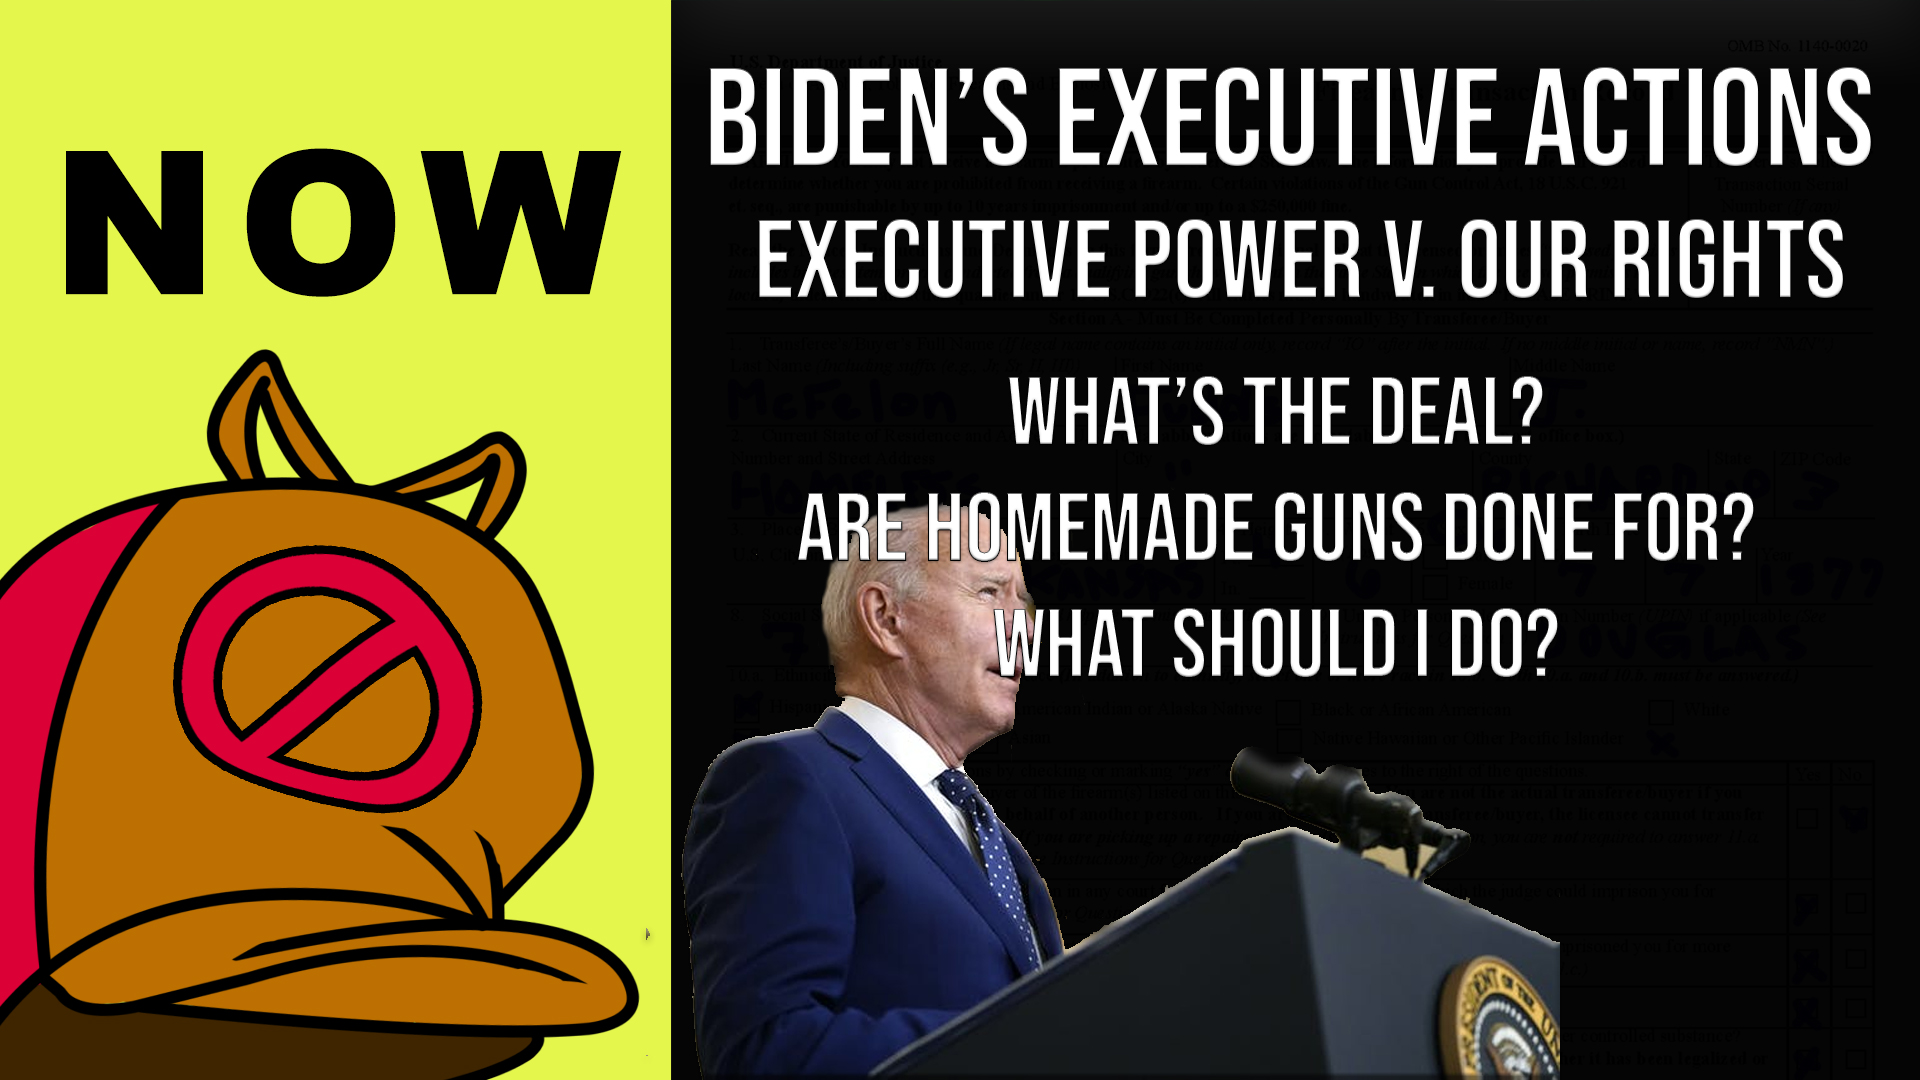 NOW: Biden's Executive Actions, Presidential Power: Are Homemade Guns in Trouble? What Do We Do?